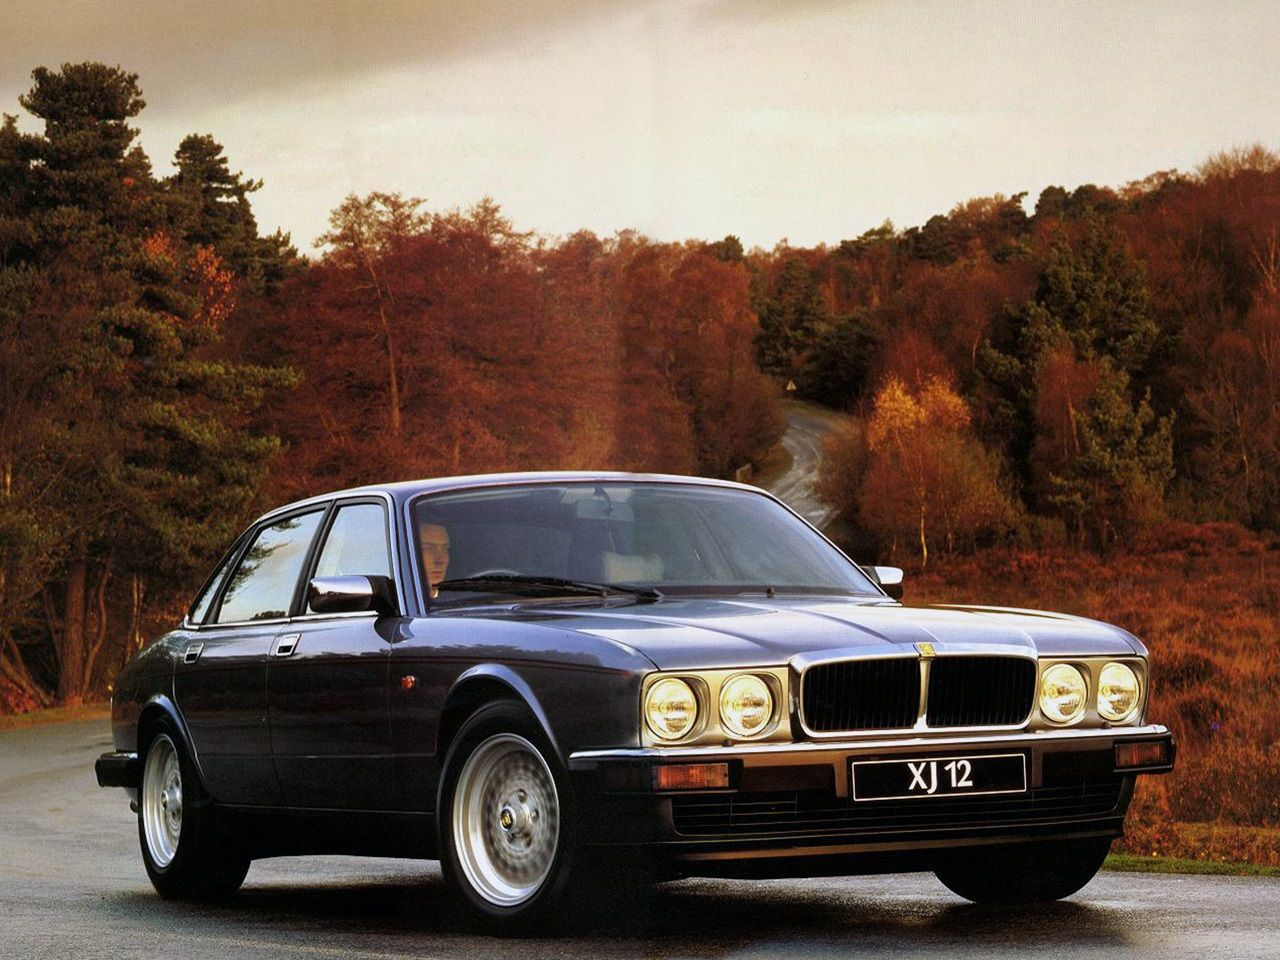 Used Luxury Jaguar XJ12 For Sale Online Today ##Jaguar #JaguarInfo ...